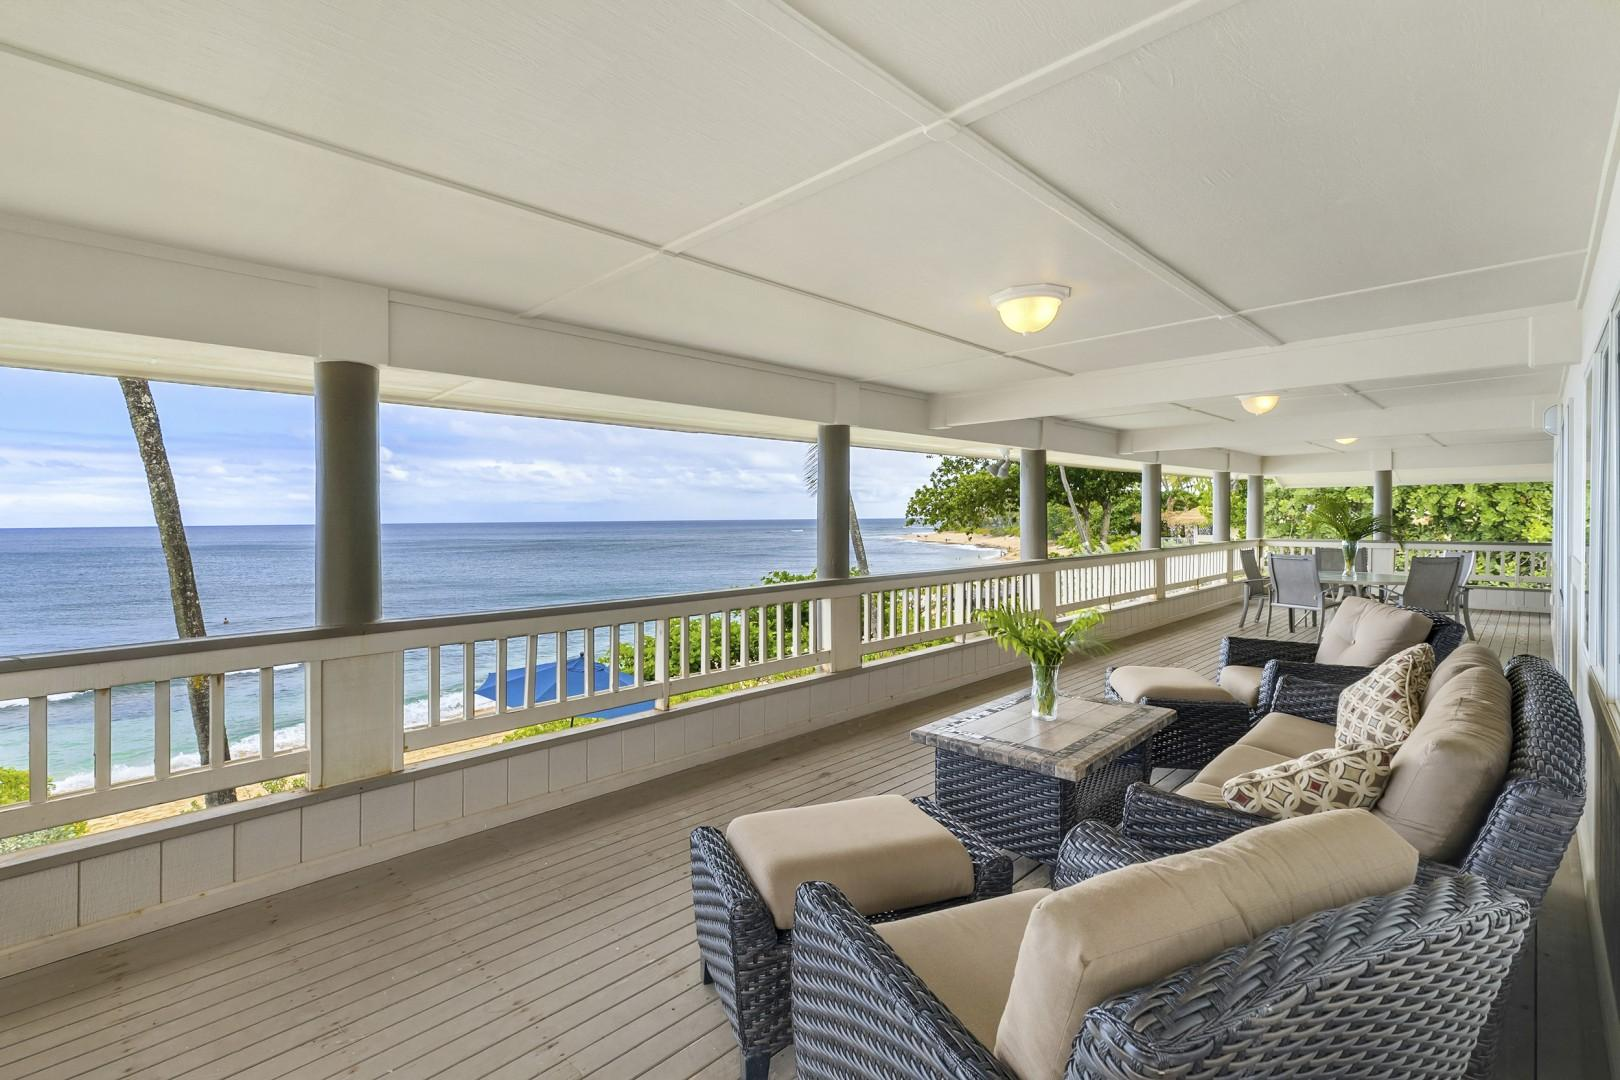 Upstairs lanai with panoramic views of the ocean.